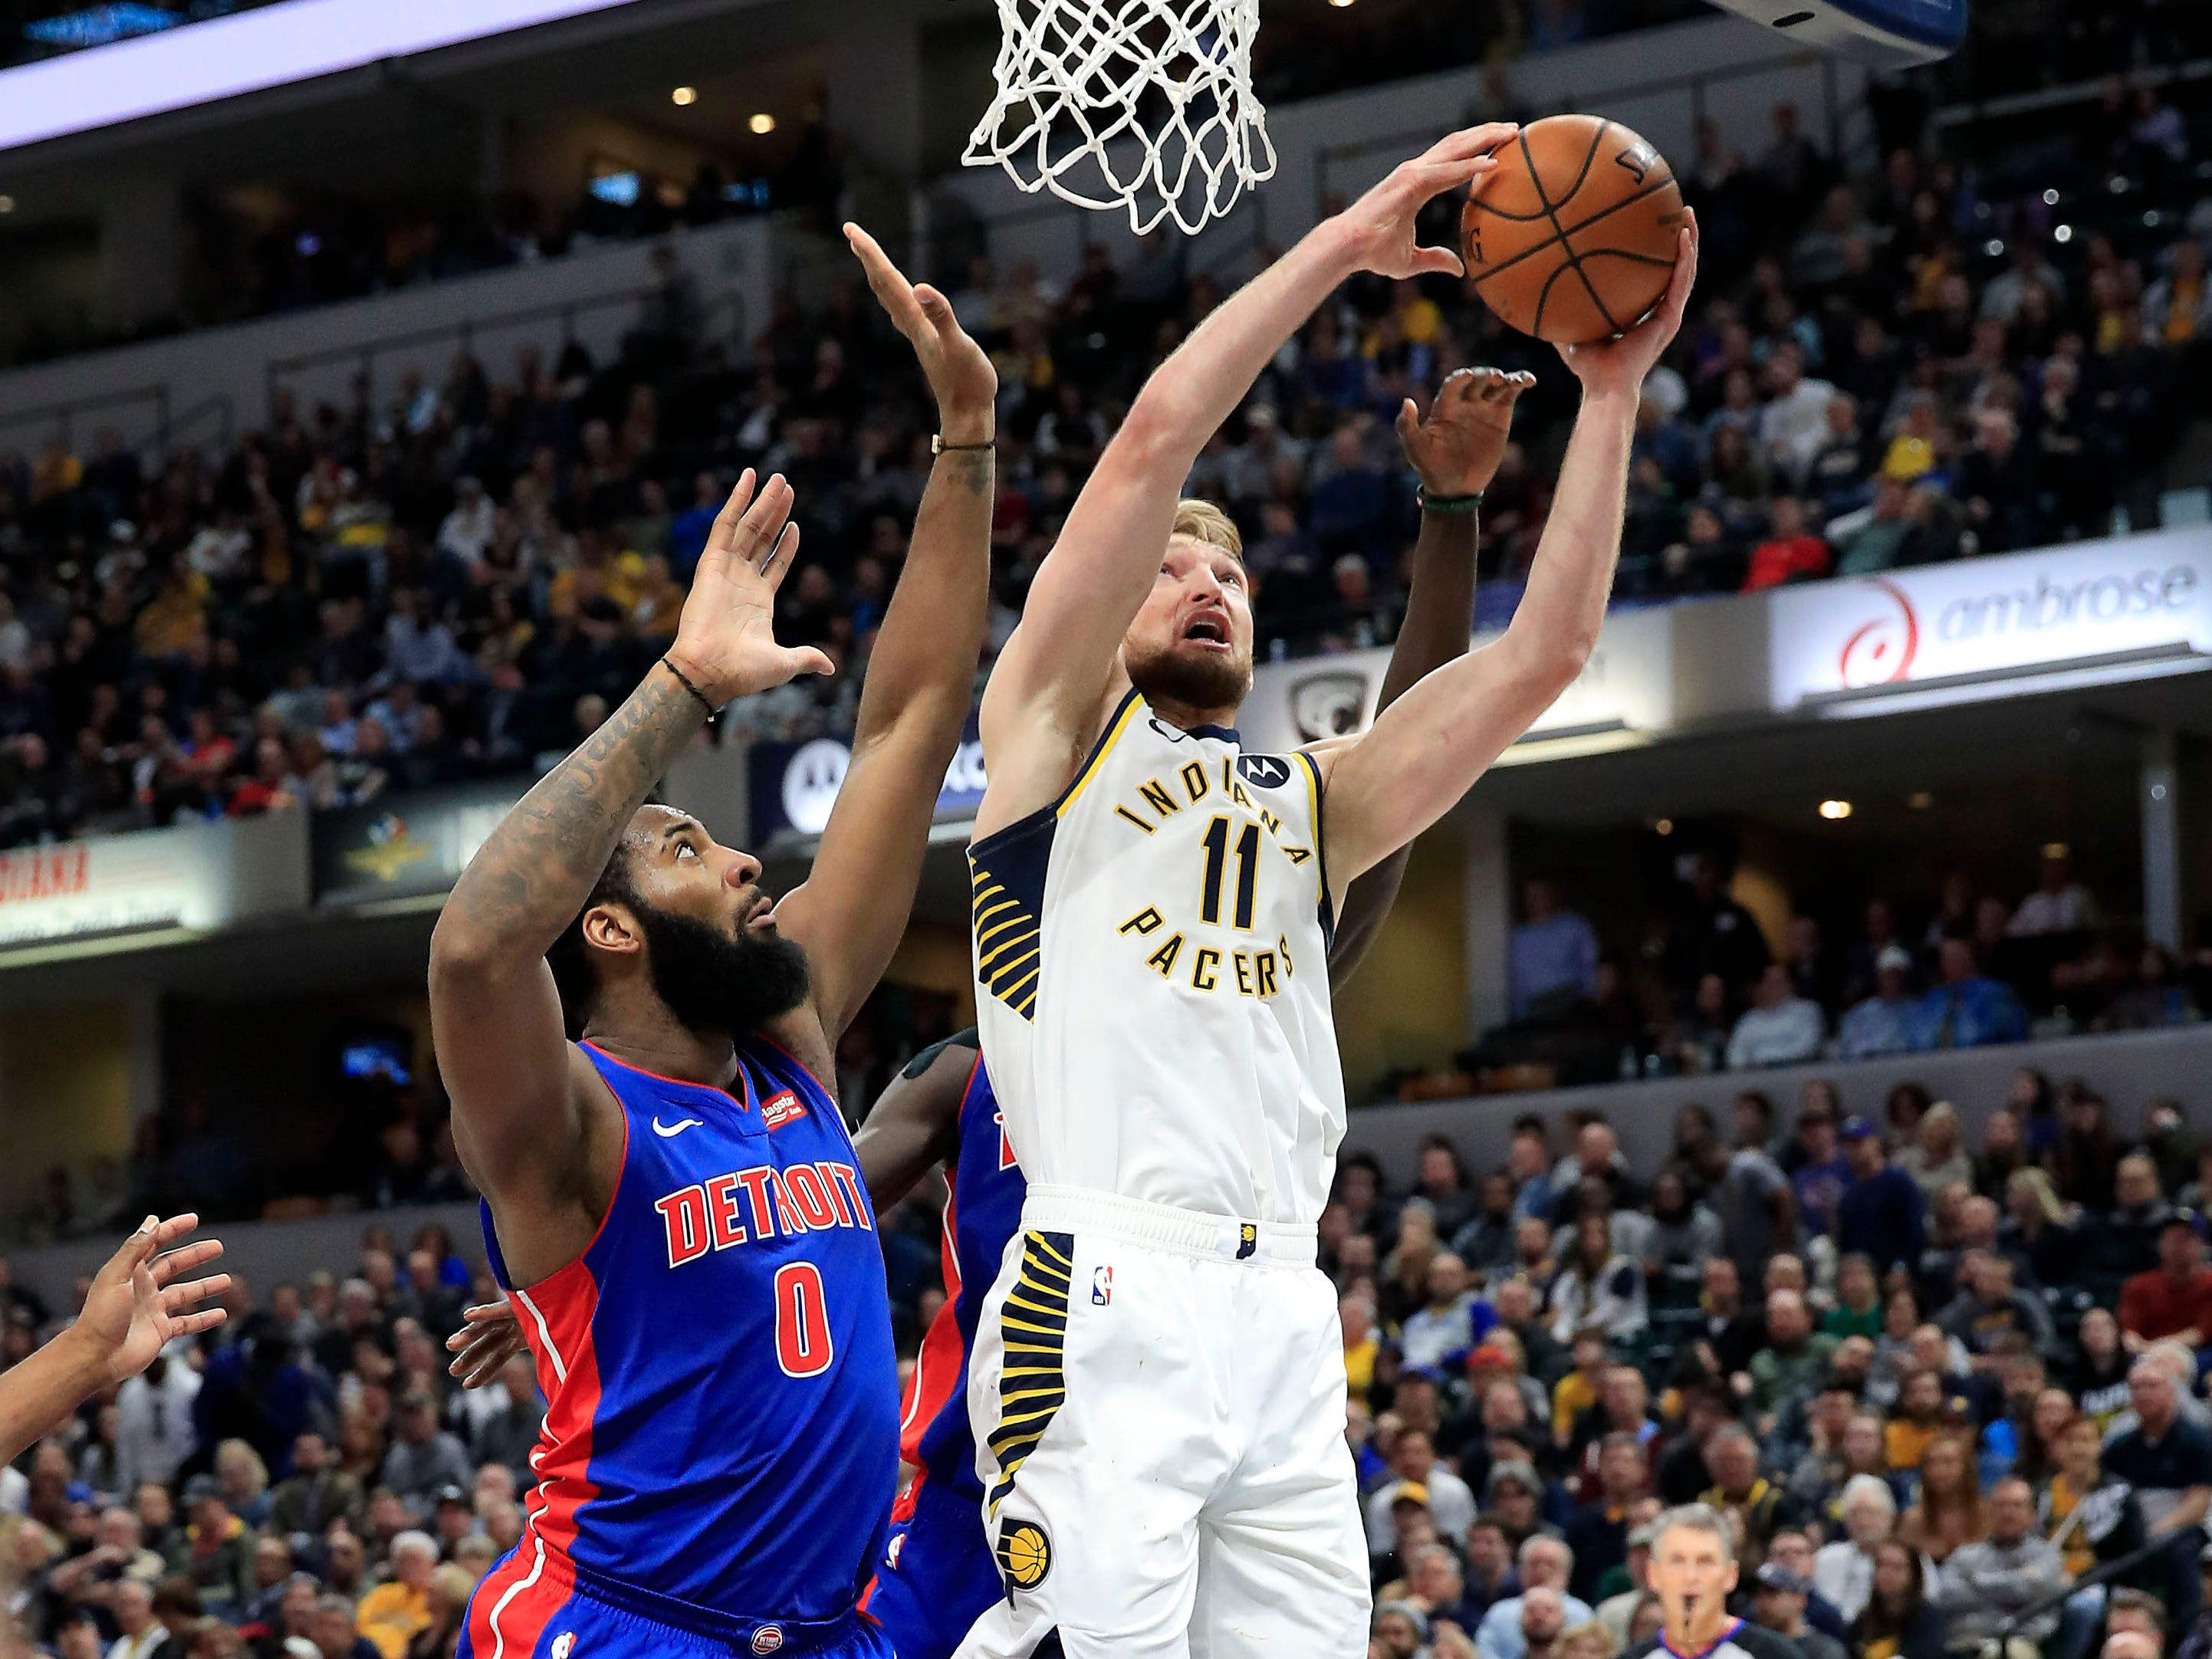 Indiana Pacers' Domantas Sabonis shoots against the Detroit Pistons' Andre Drummond at Bankers Life Fieldhouse on April 1, 2019 in Indianapolis.